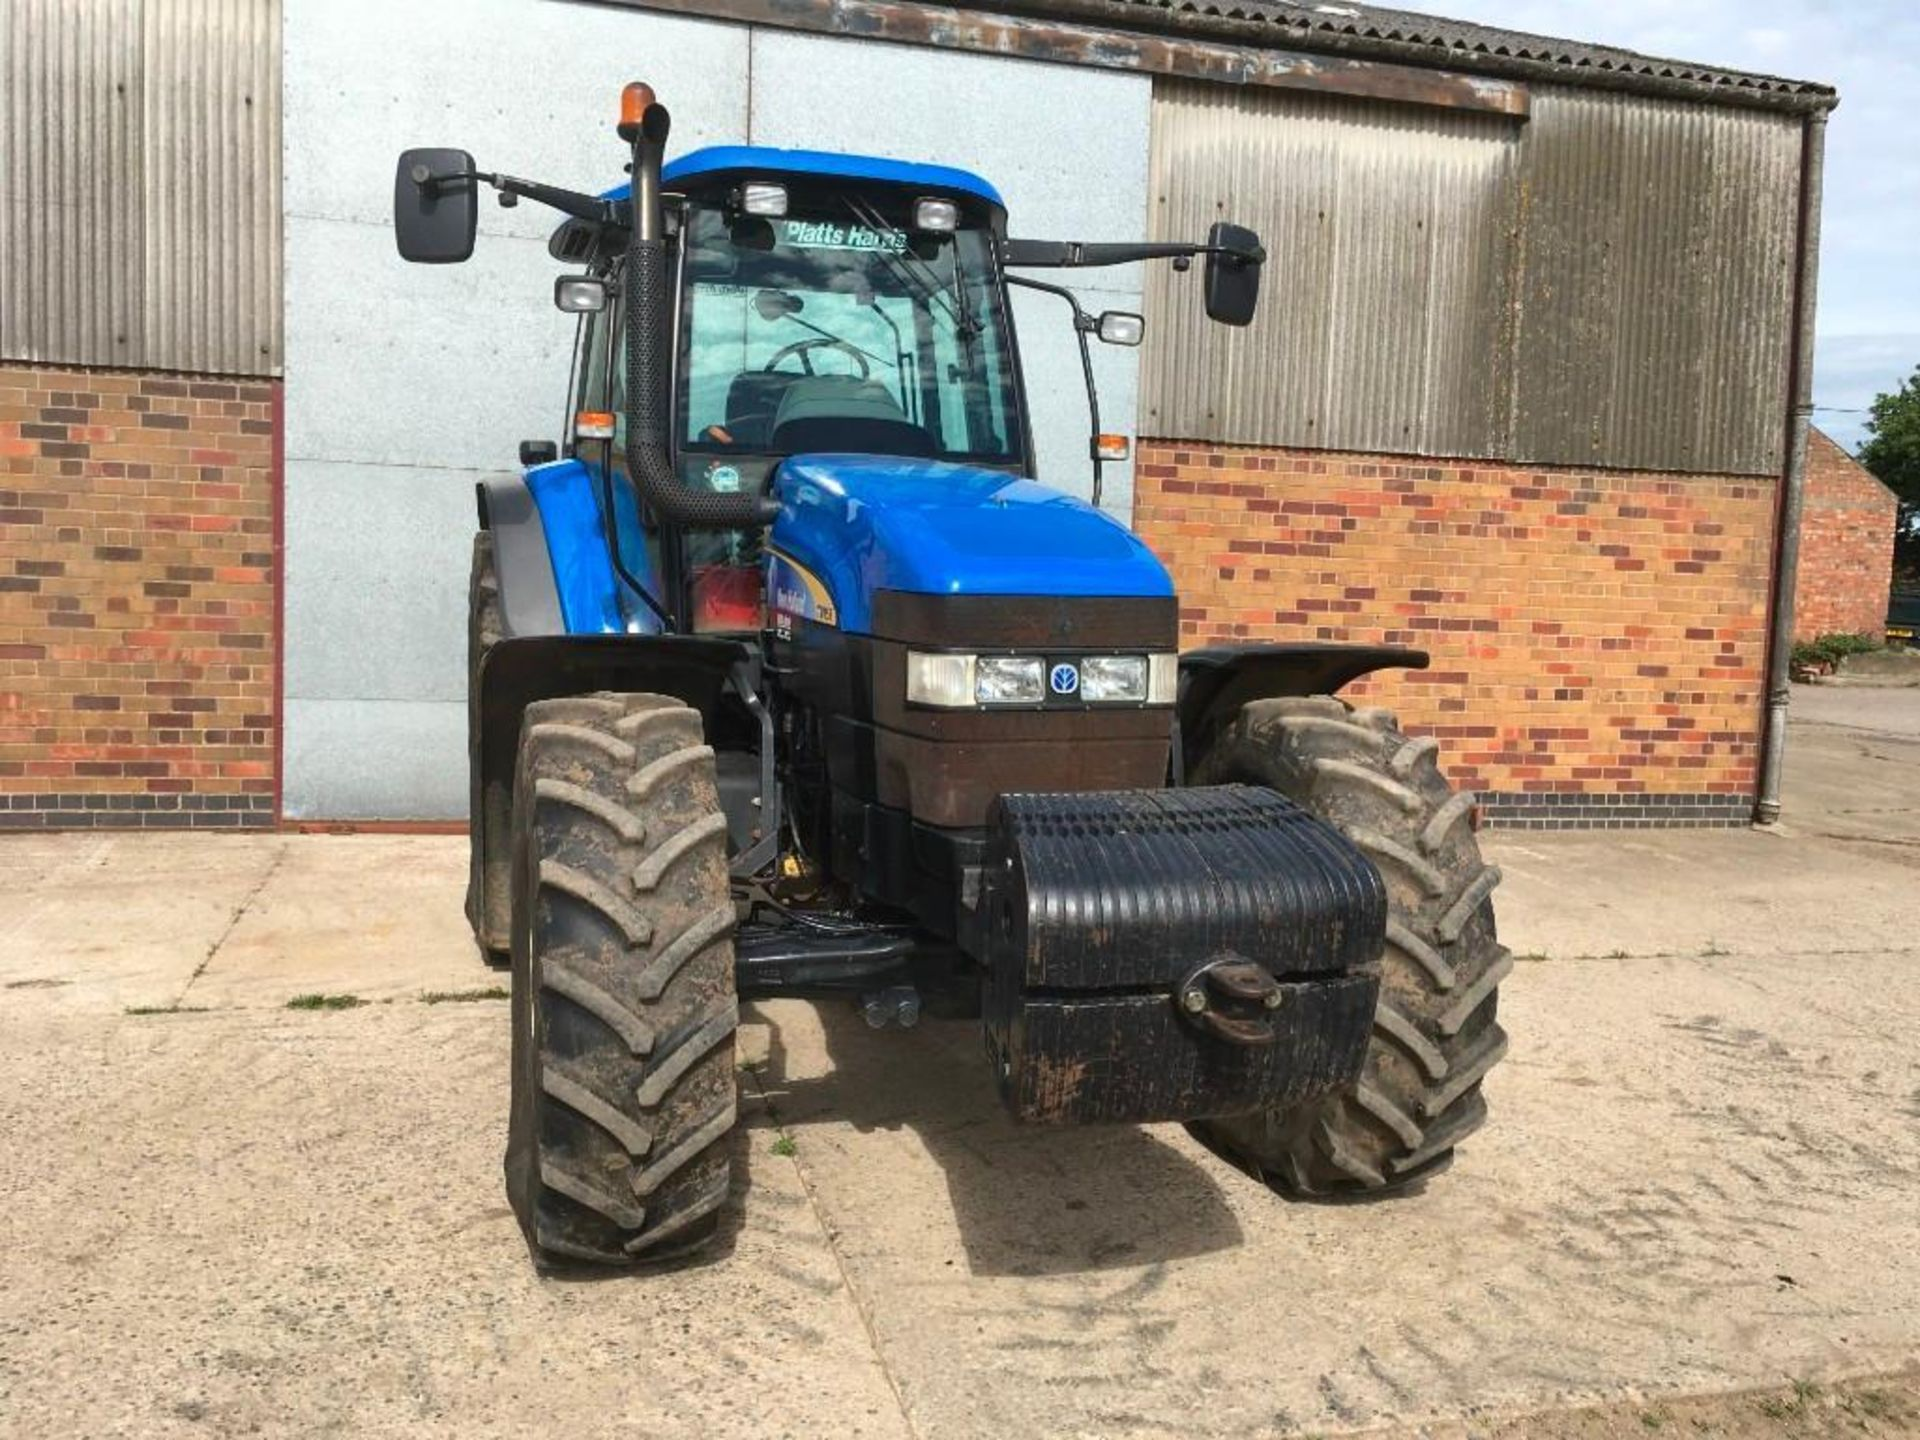 2007 New Holland TM155 tractor with range command gear box, 4 spool valves, push out pick up hitch, - Image 3 of 12